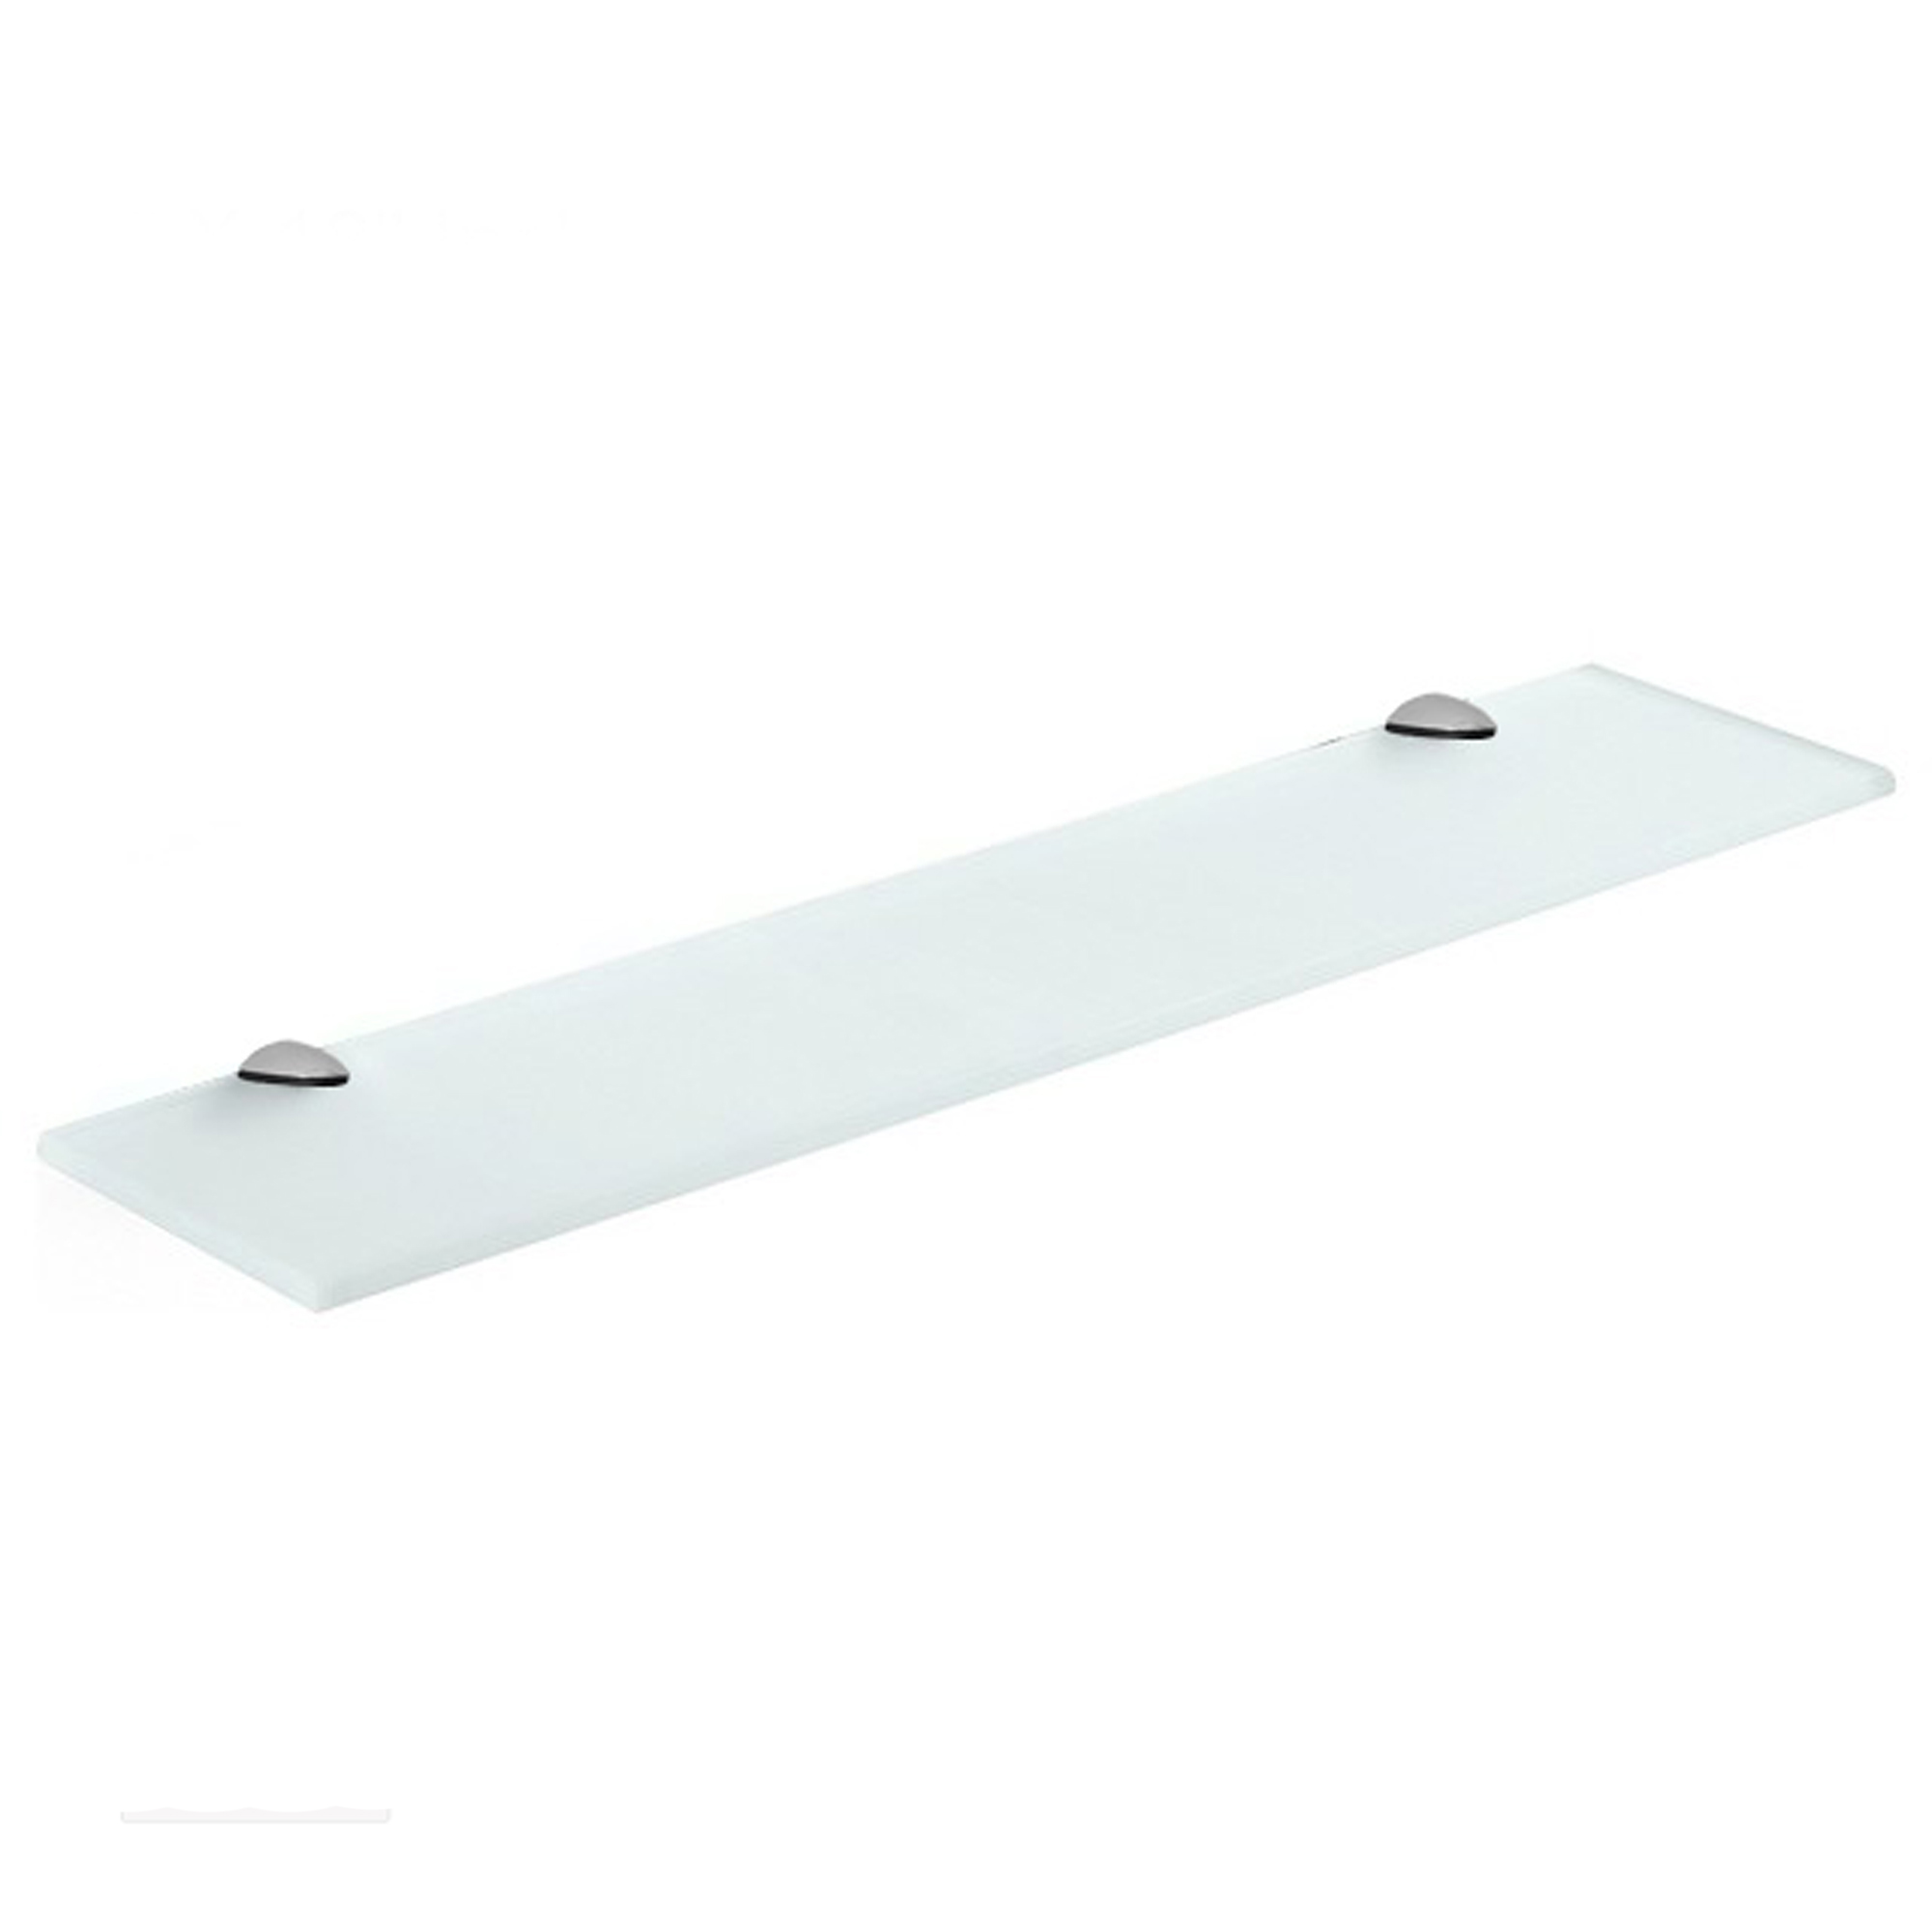 fab glass and mirror rectangle floating frosted glass shelf kit with brackets ebay. Black Bedroom Furniture Sets. Home Design Ideas